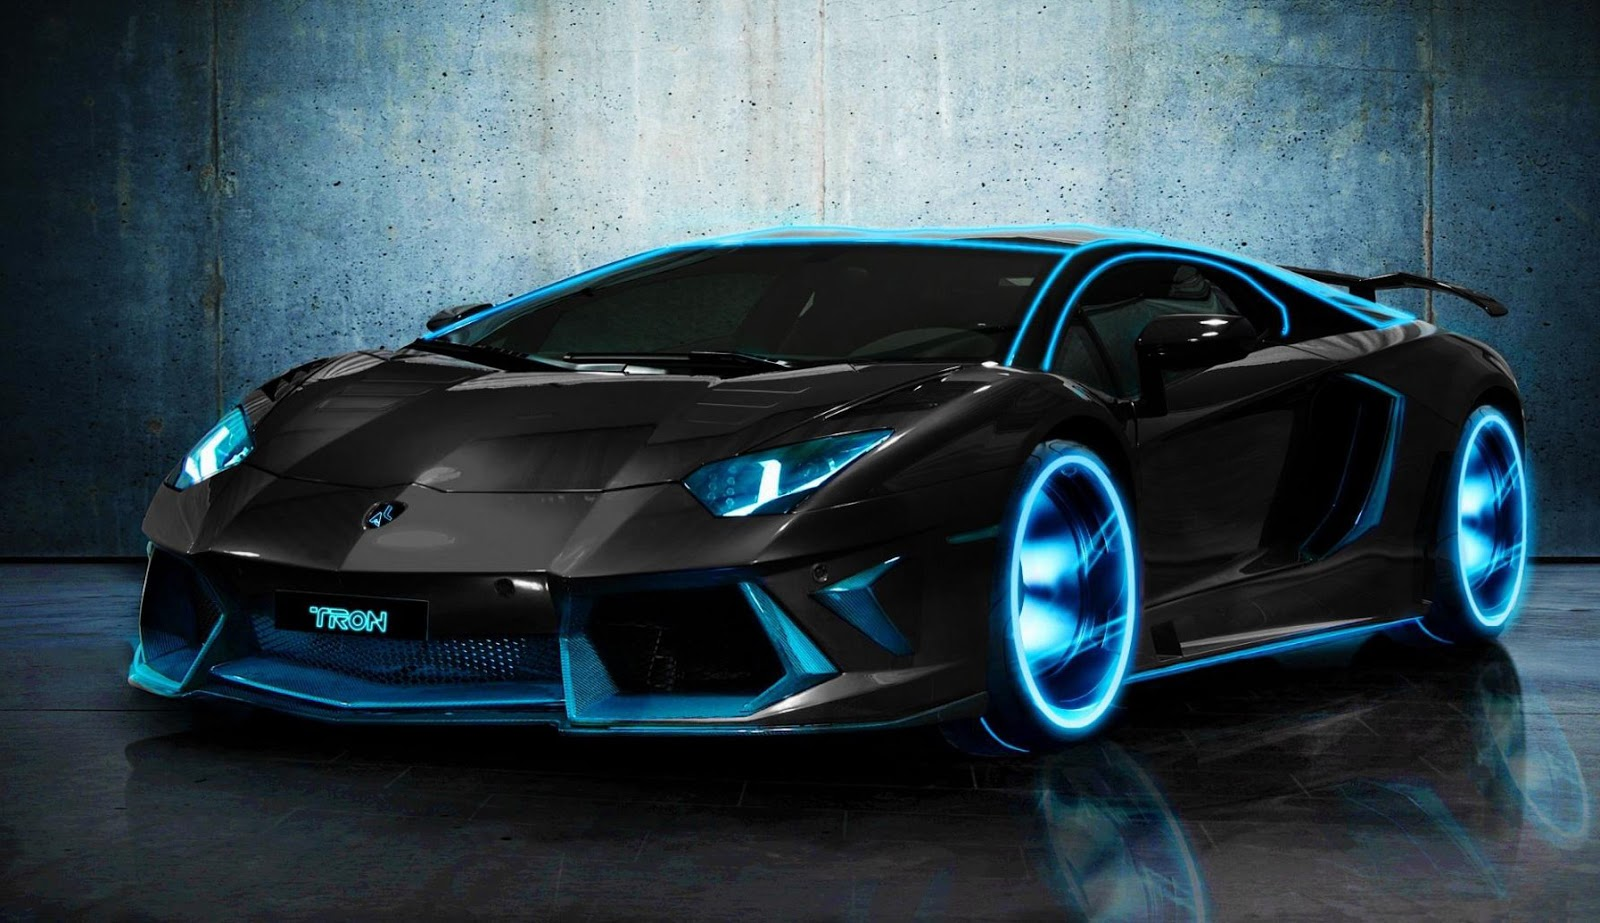 Sports Car Images Gallery of 38 Sports Car Backgrounds 1600x923